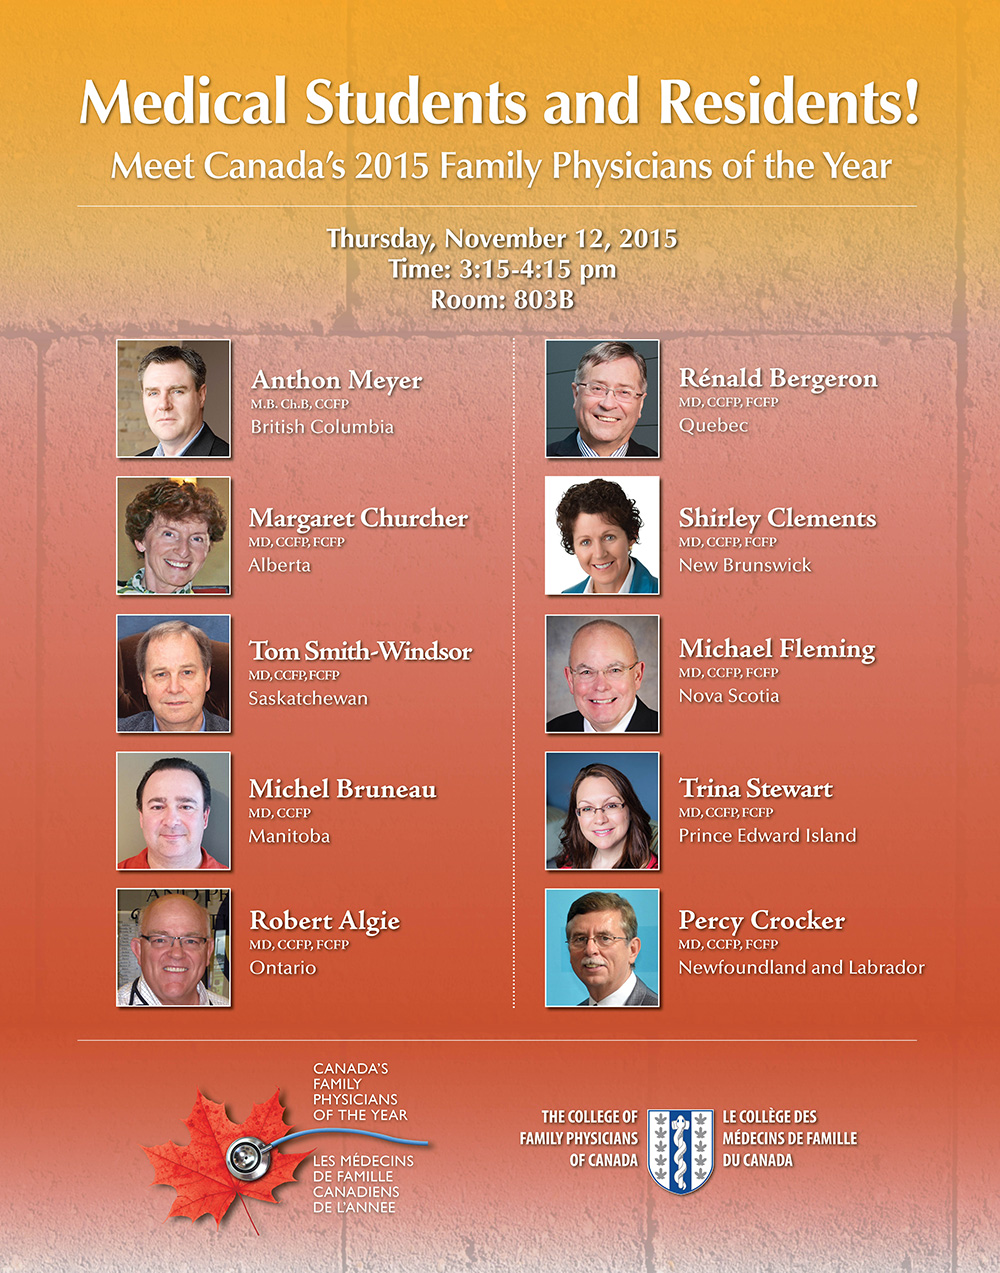 Medical Students and Residents! Meet Canada's 2015 Family Physicians of the Year